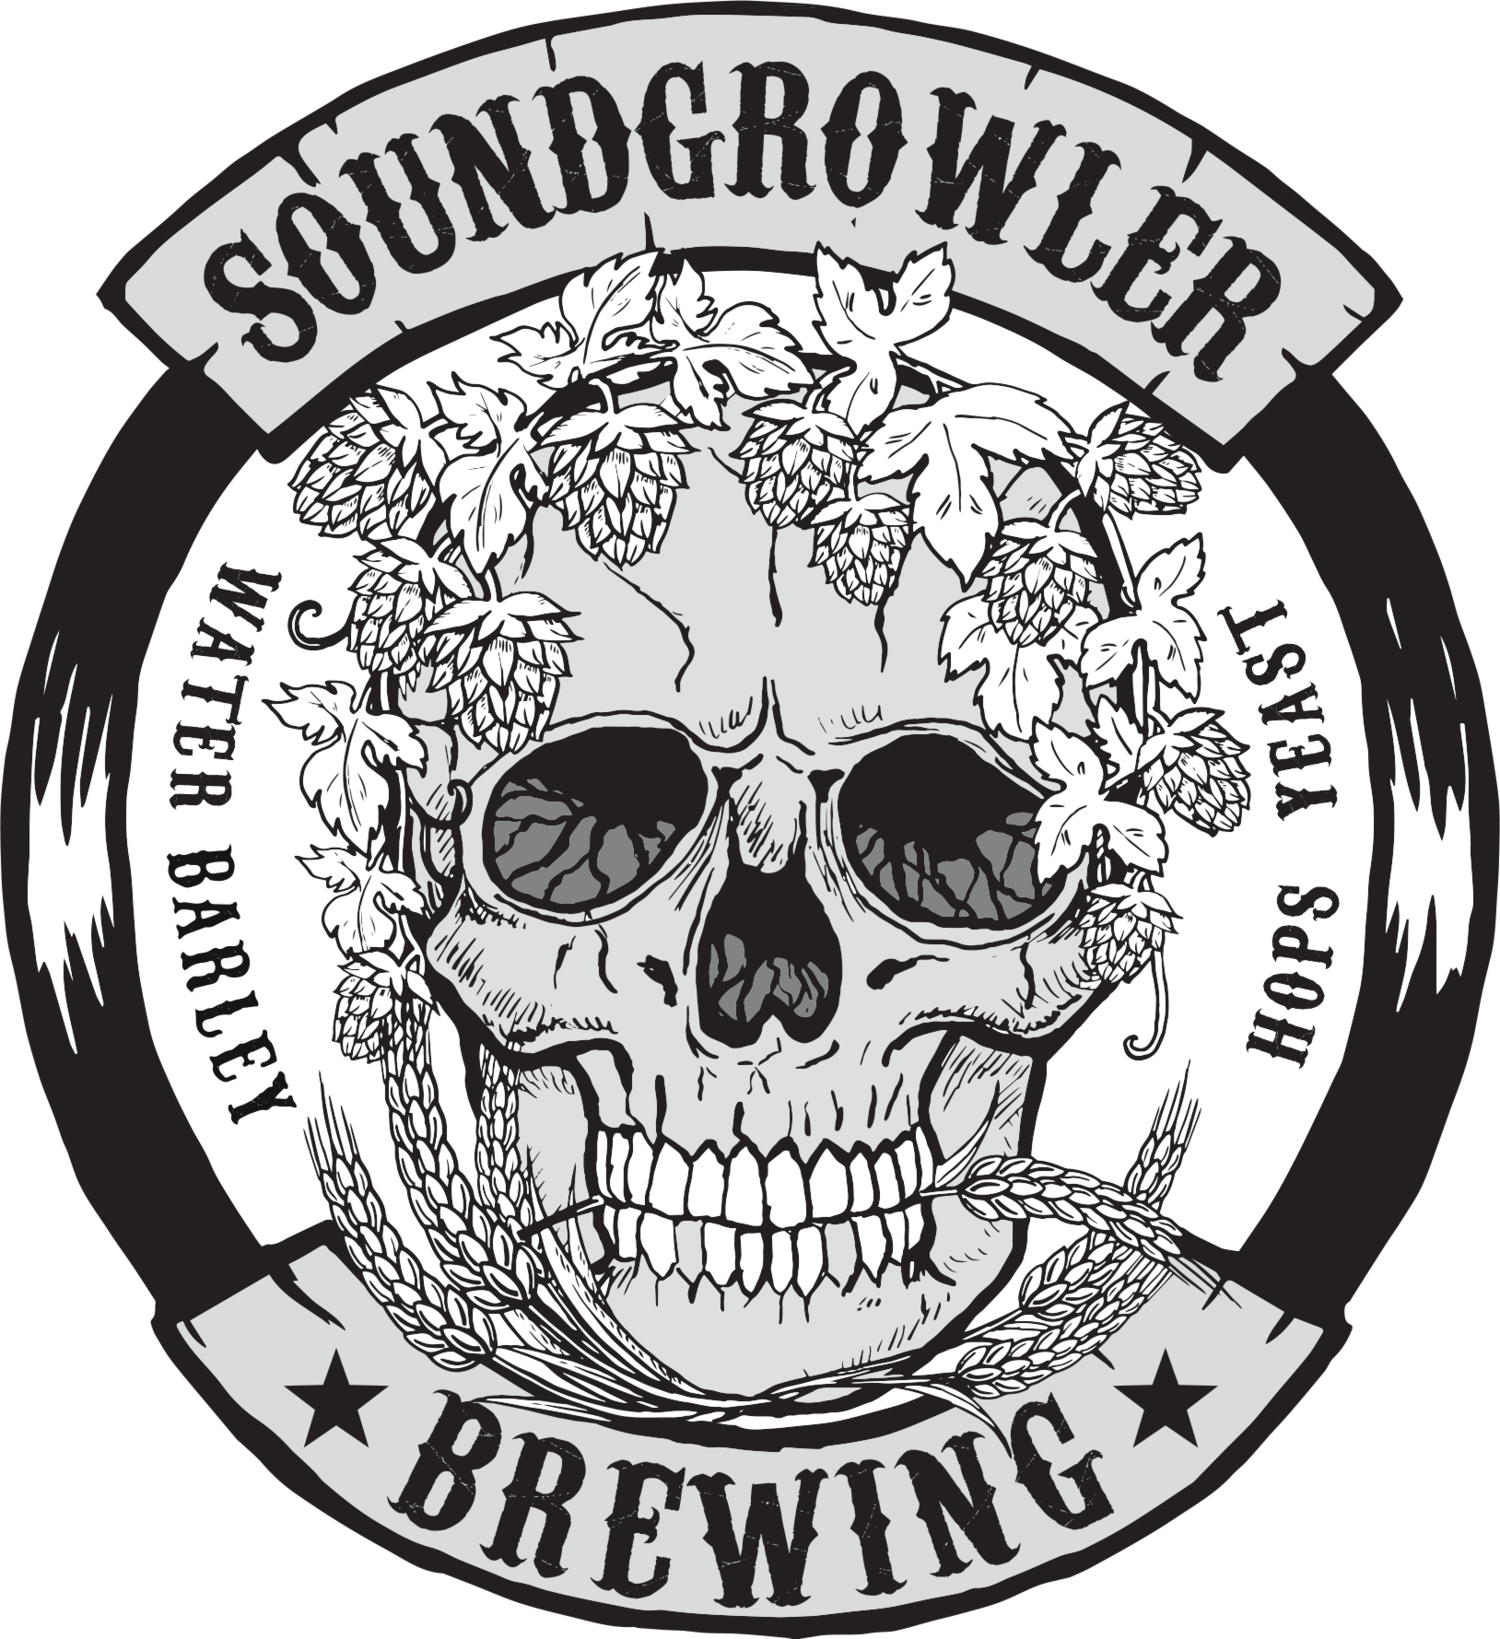 Soundgrowler Brewing Co.